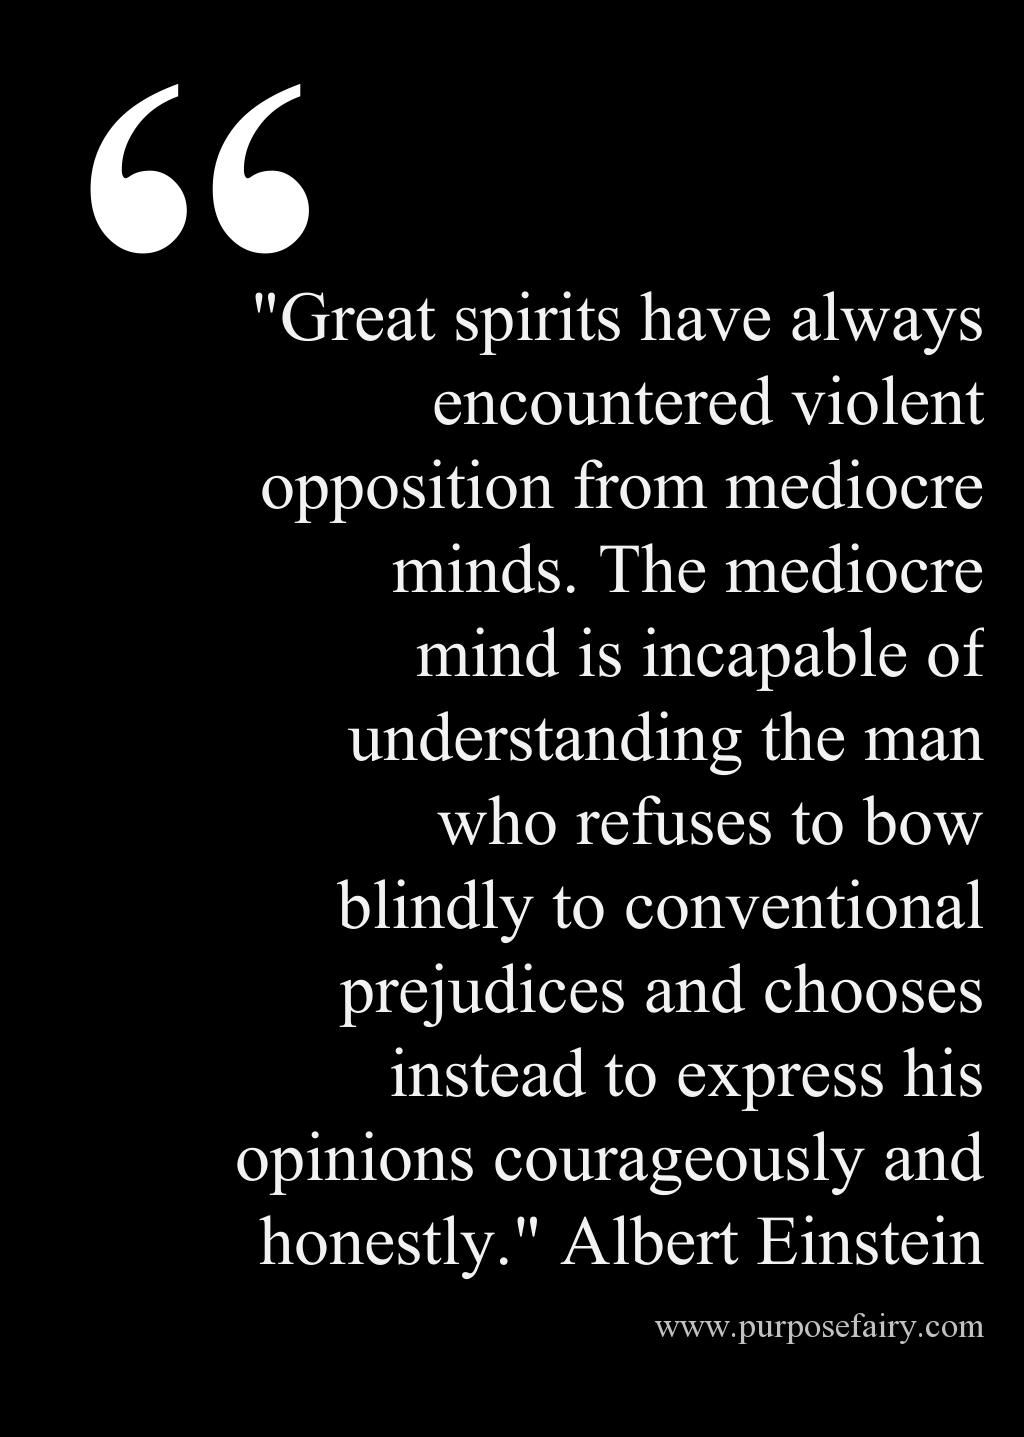 """""""Great spirits have always encountered violent opposition from mediocre minds. The mediocre mind is incapable of understanding the man who refuses to bow blindly to conventional prejudices and chooses instead to express his opinions courageously and honestly."""" Albert Einstein"""